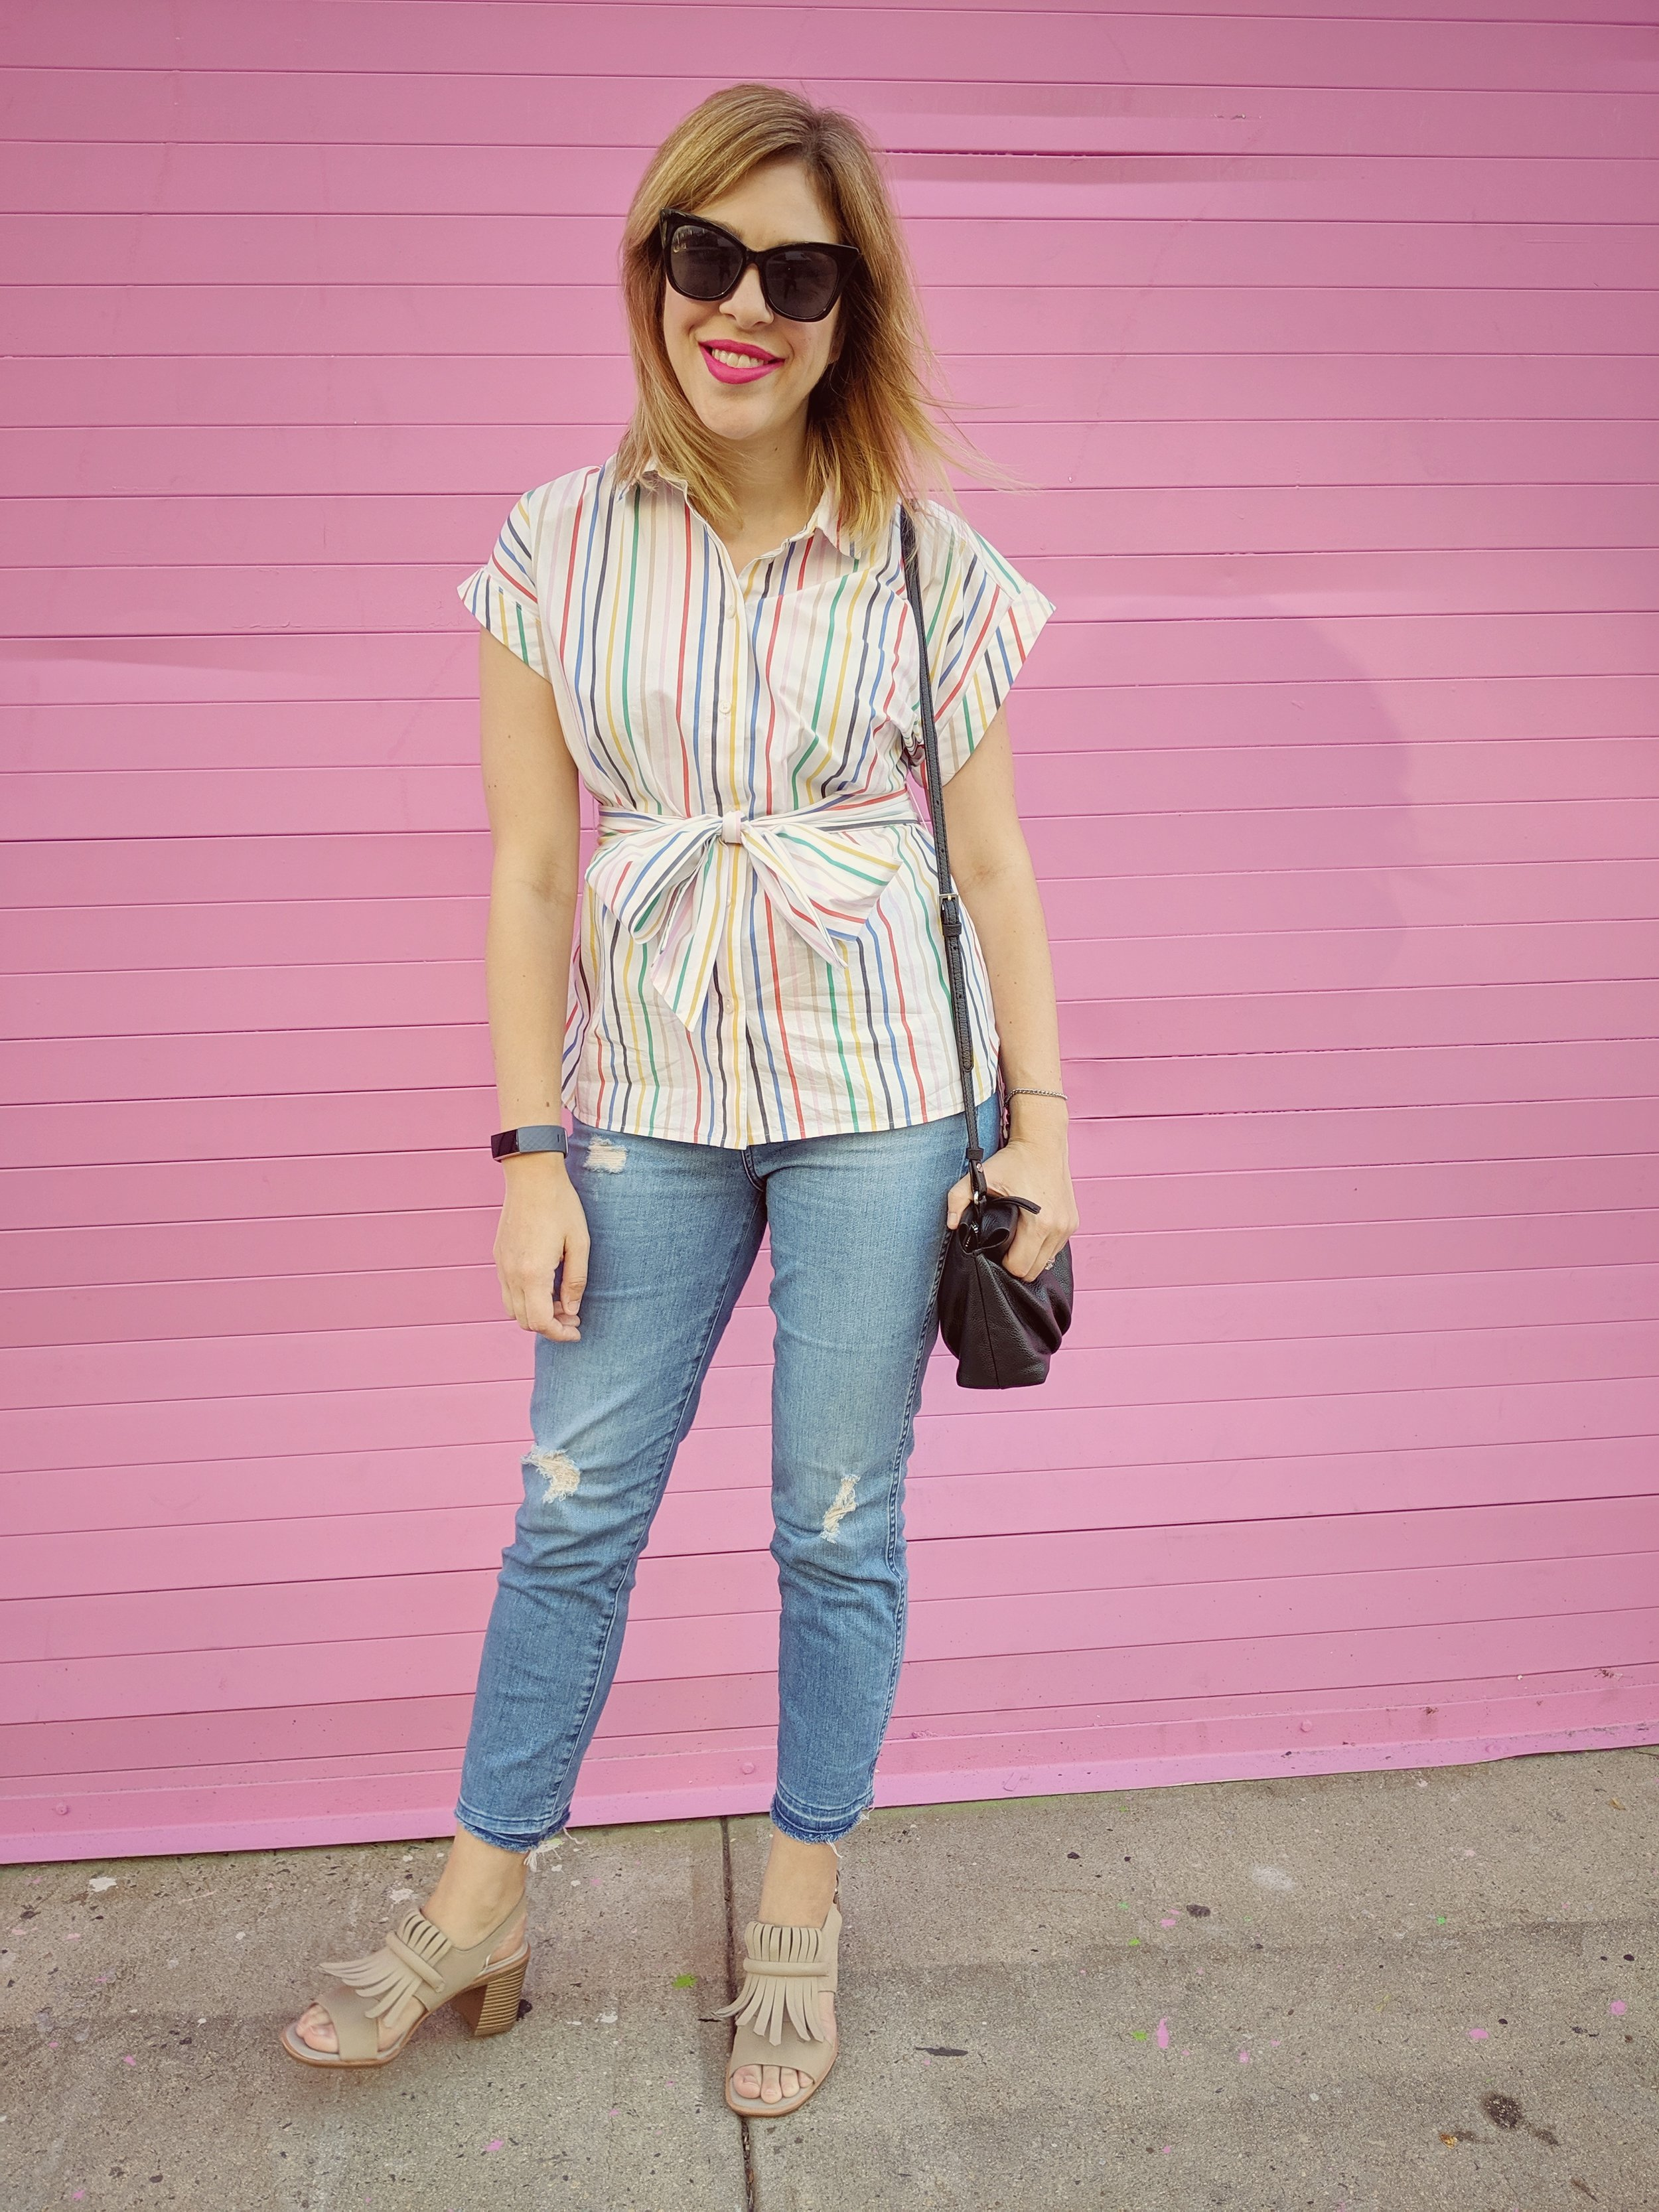 jcrew striped shirt and denim4.jpeg